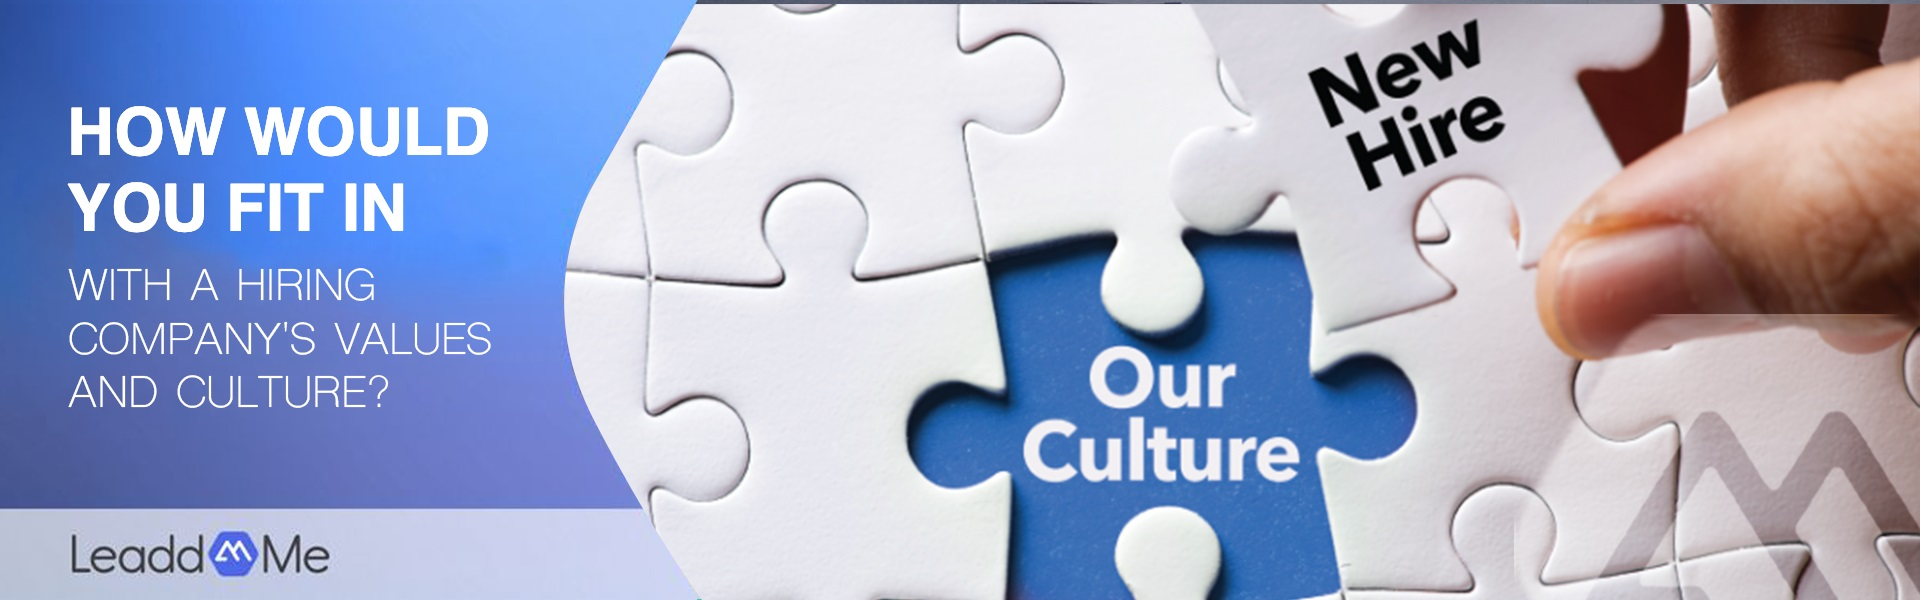 How would you fit in with a hiring company's values and culture?